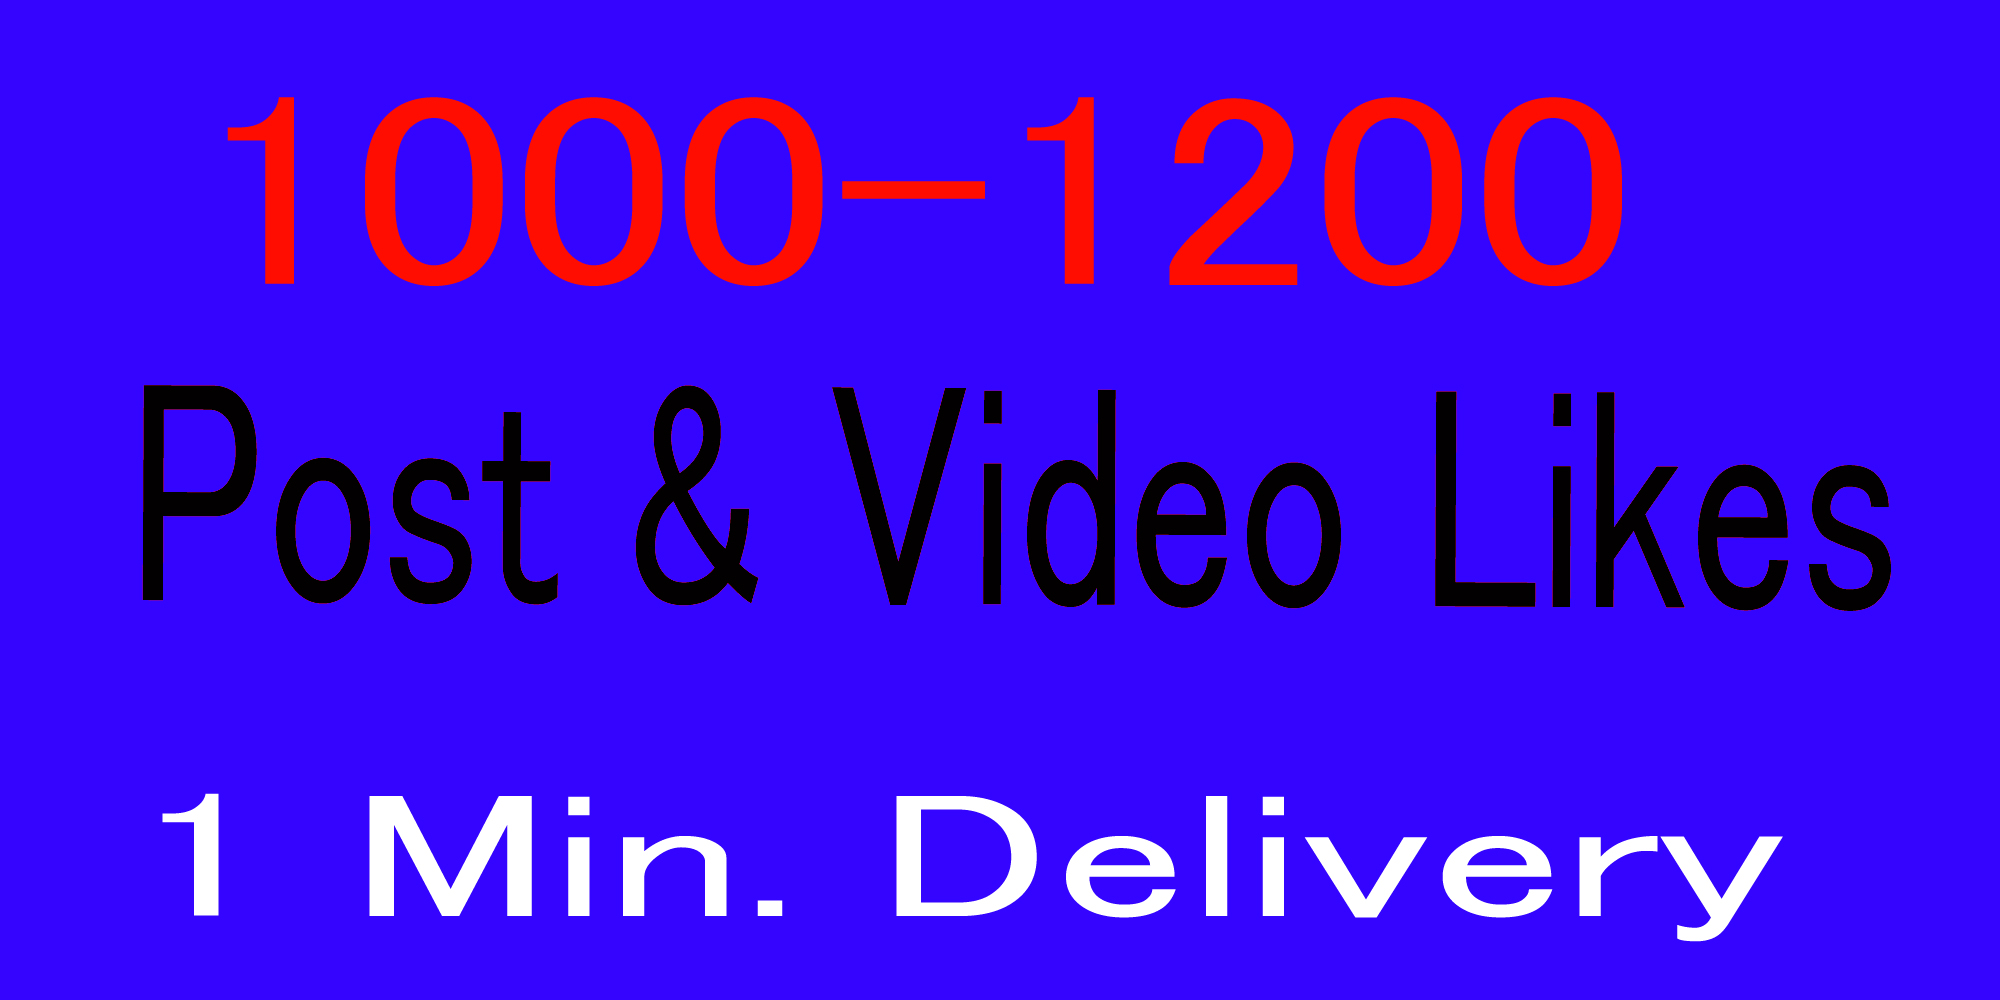 Instantly Organic 1000- 1200 Social Pictures Promotion 1 mintus delivery